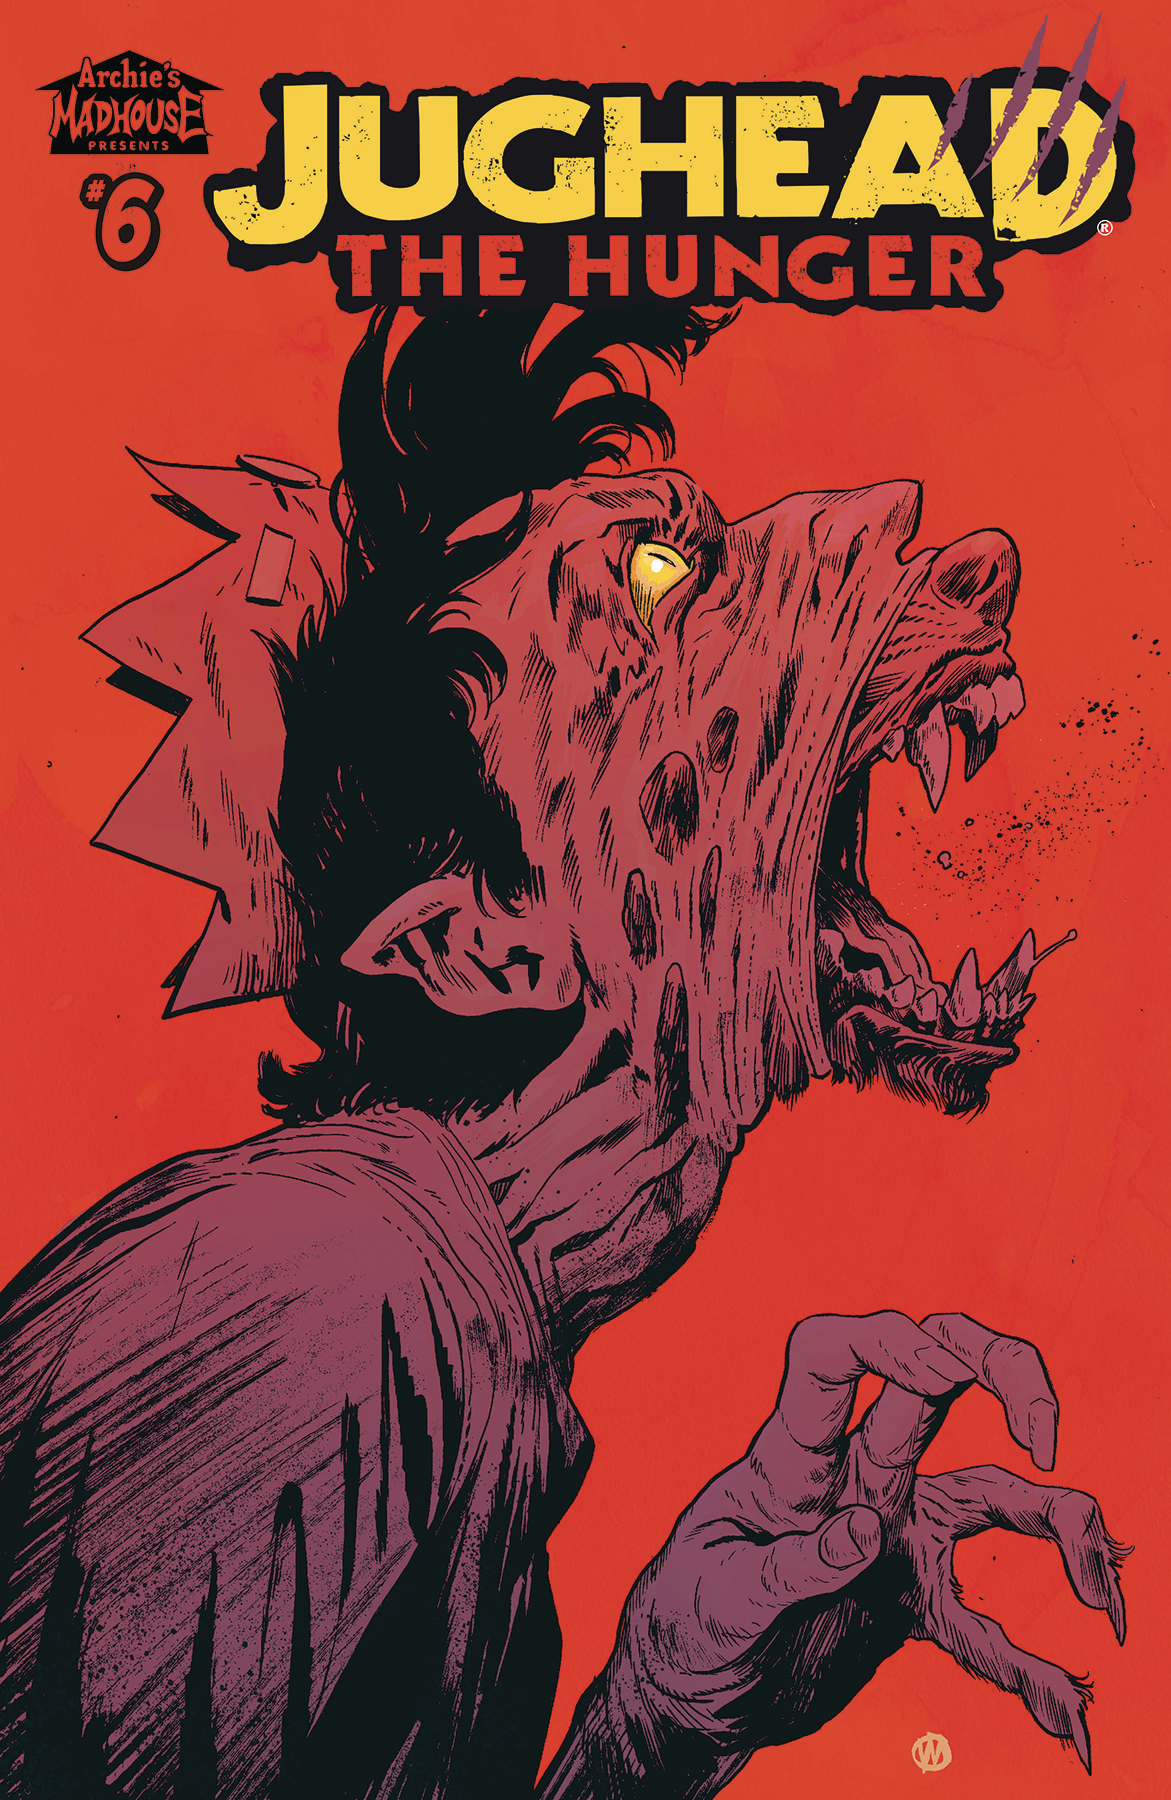 JUGHEAD THE HUNGER #6 CVR C WALSH (MR)